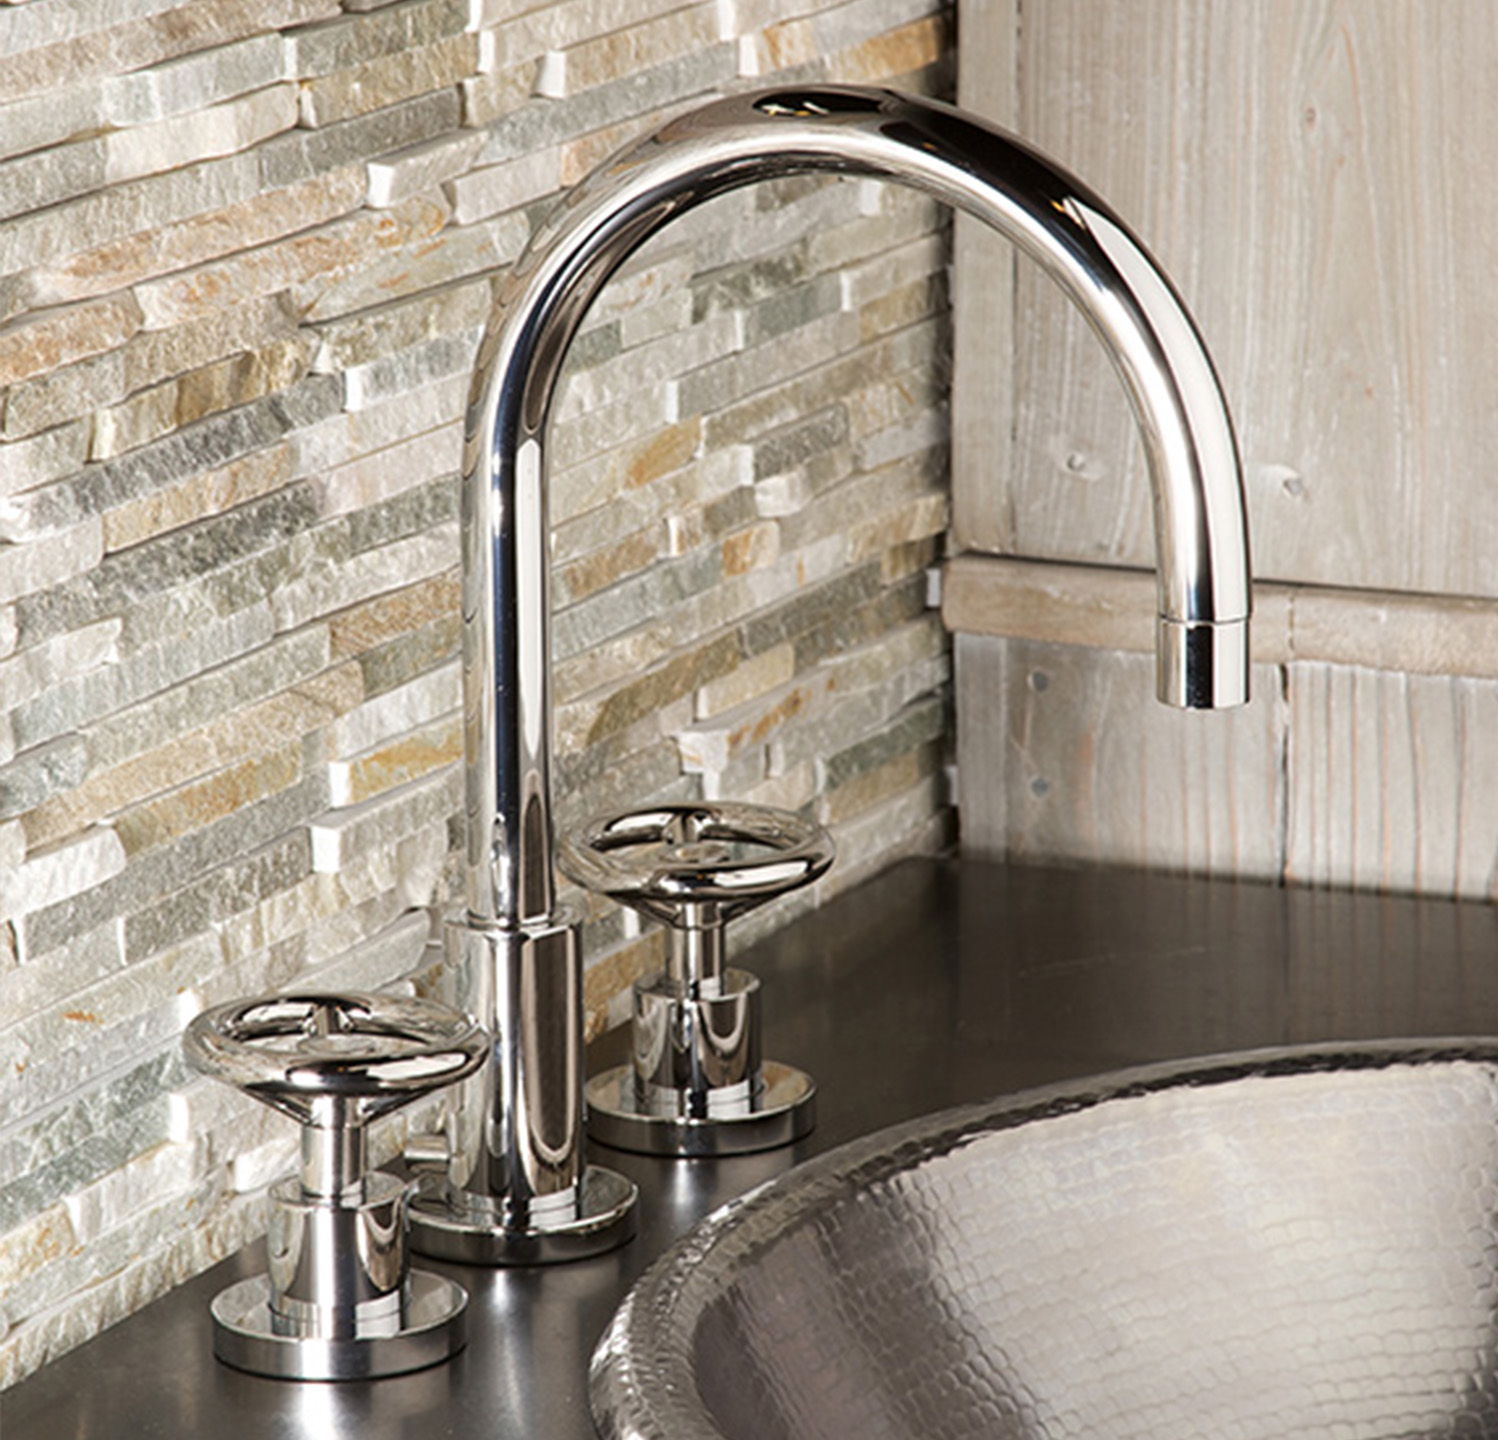 Slater's handles are inspired by a traditional, iconic gate valve, but its design is infused with modern touches.